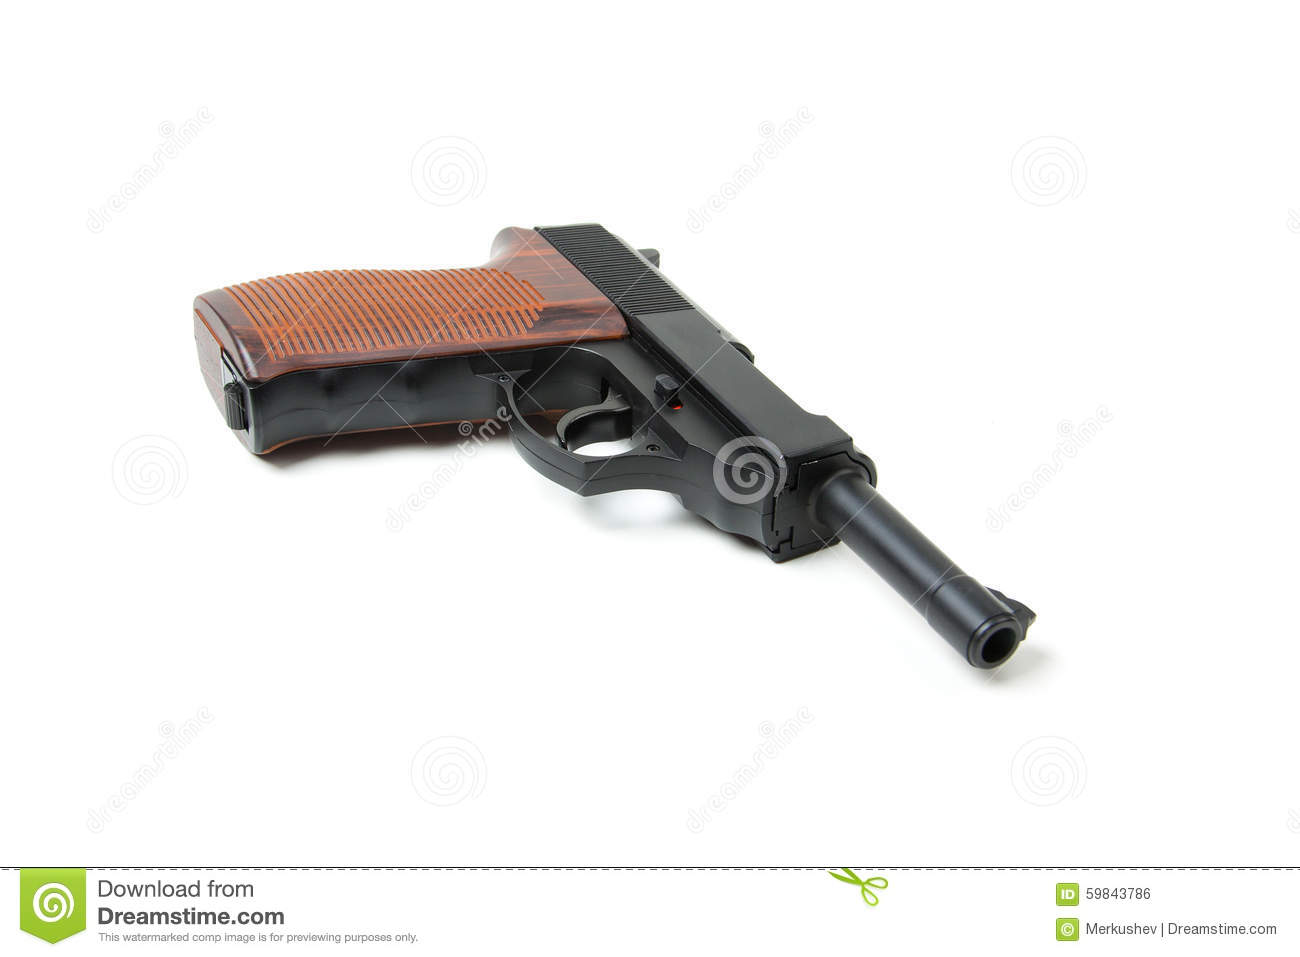 gun white background - photo #33